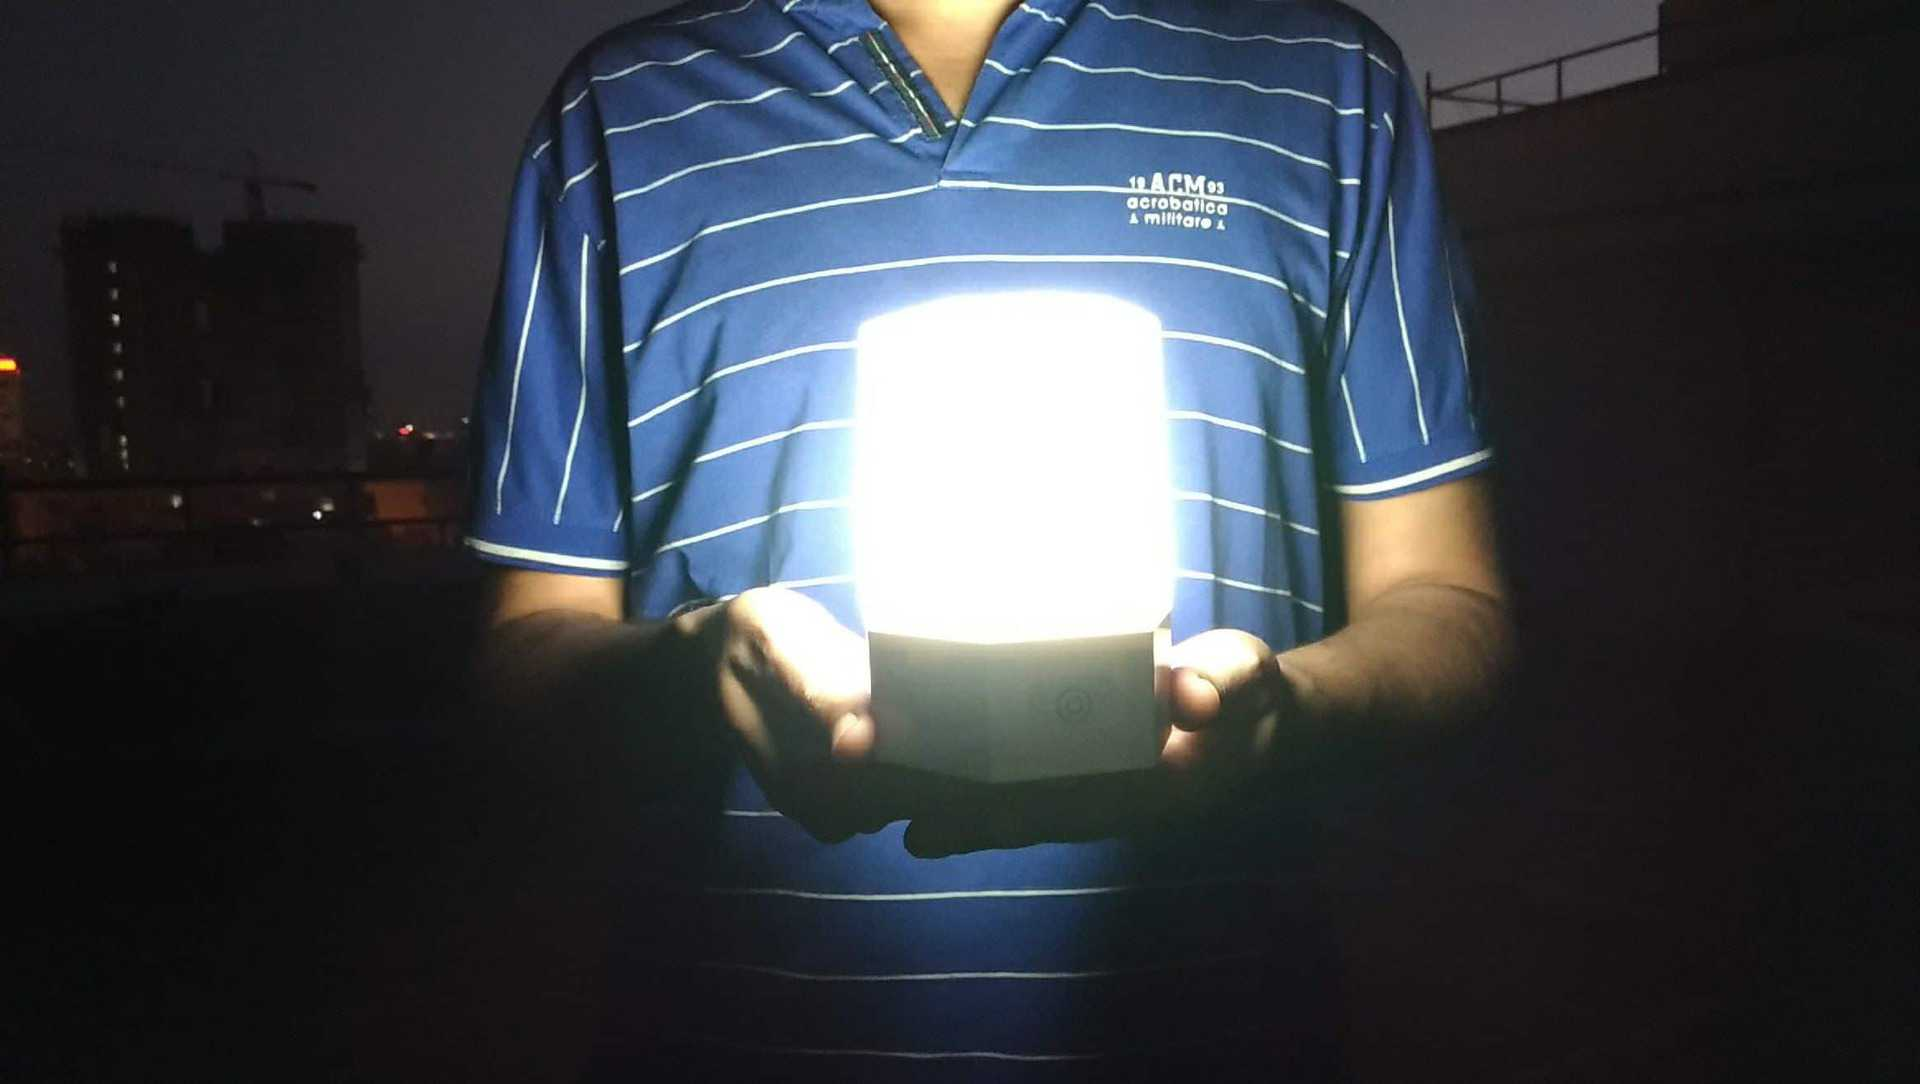 zuzilite-smart-lamp-review-moon-light-holding-on-hands